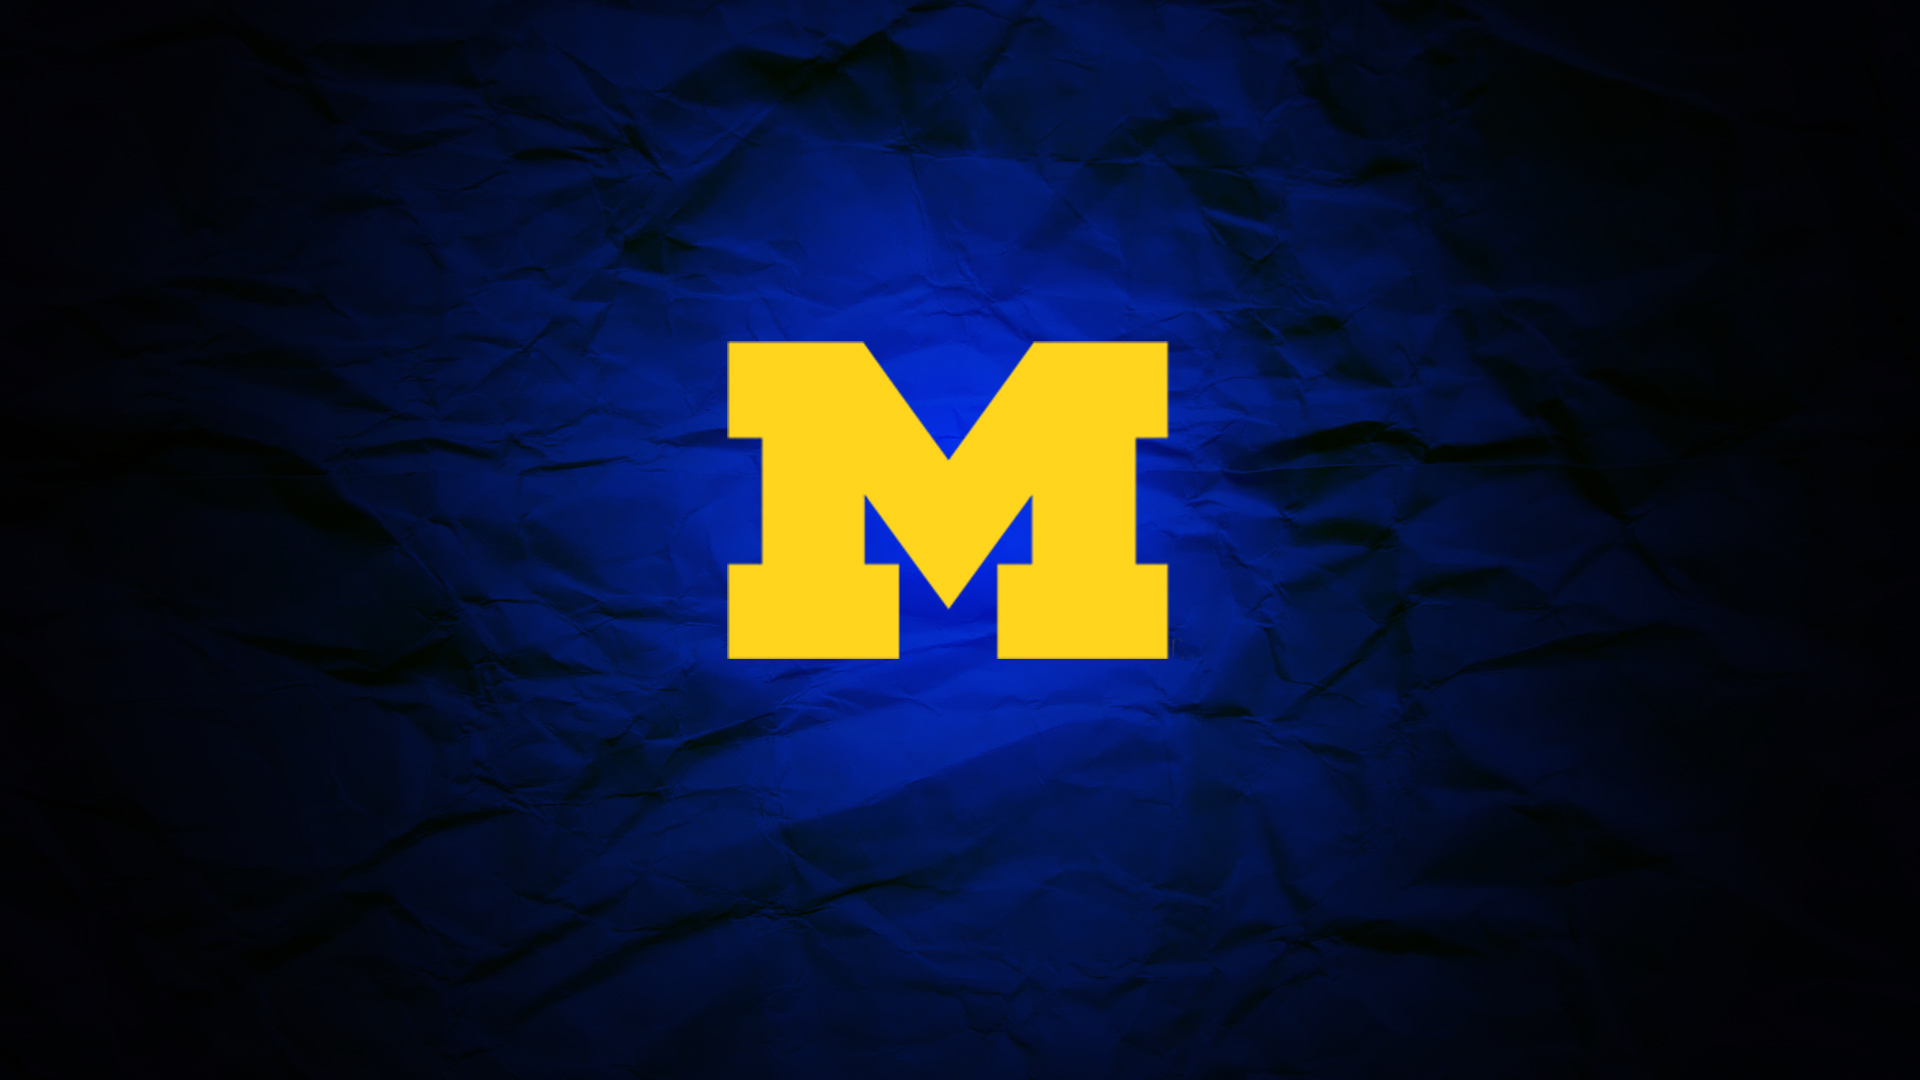 DOWNLOAD WALLPAPER Michigan Wolverines - FULL SIZE ...